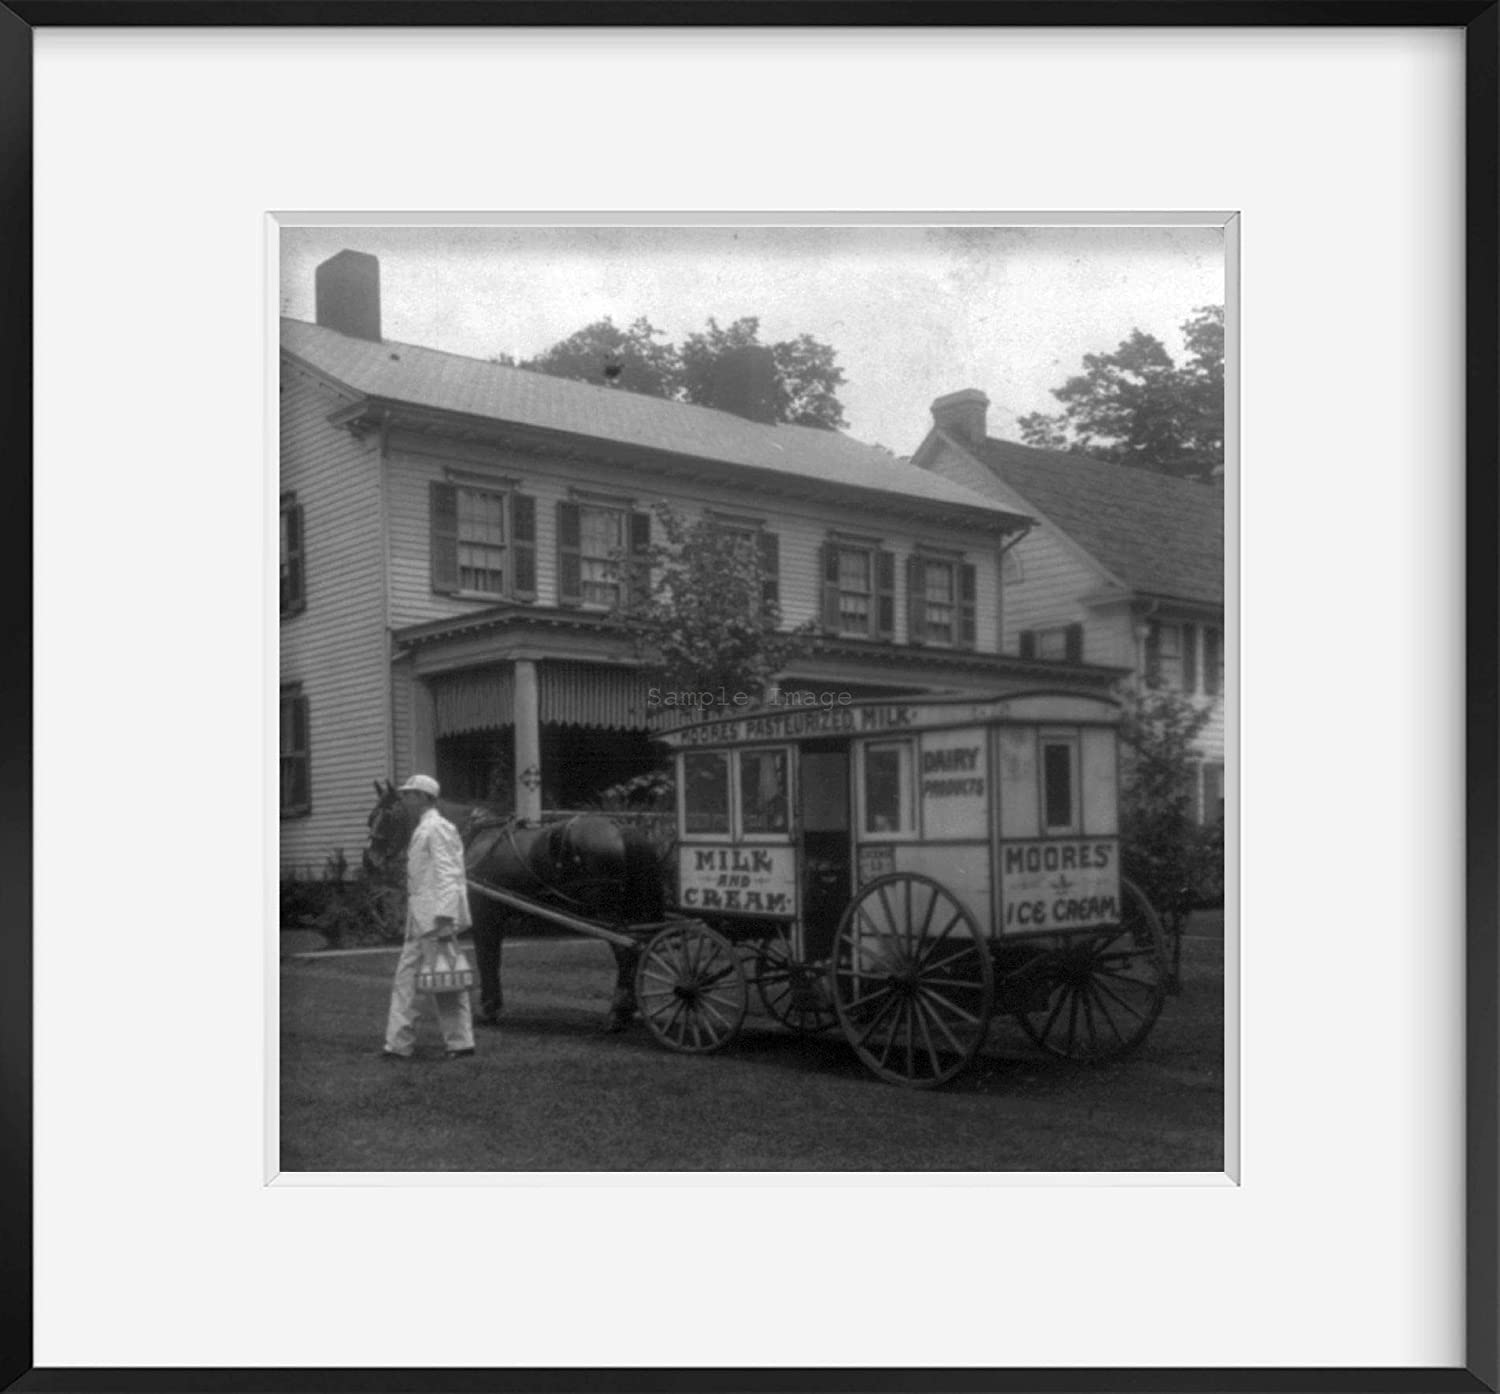 INFINITE PHOTOGRAPHS 1925 Photo Delivering Milk to City Homes Milkman Carrying Milk from Horse-Drawn Wagon of Moores Dairy Products in Front of House.